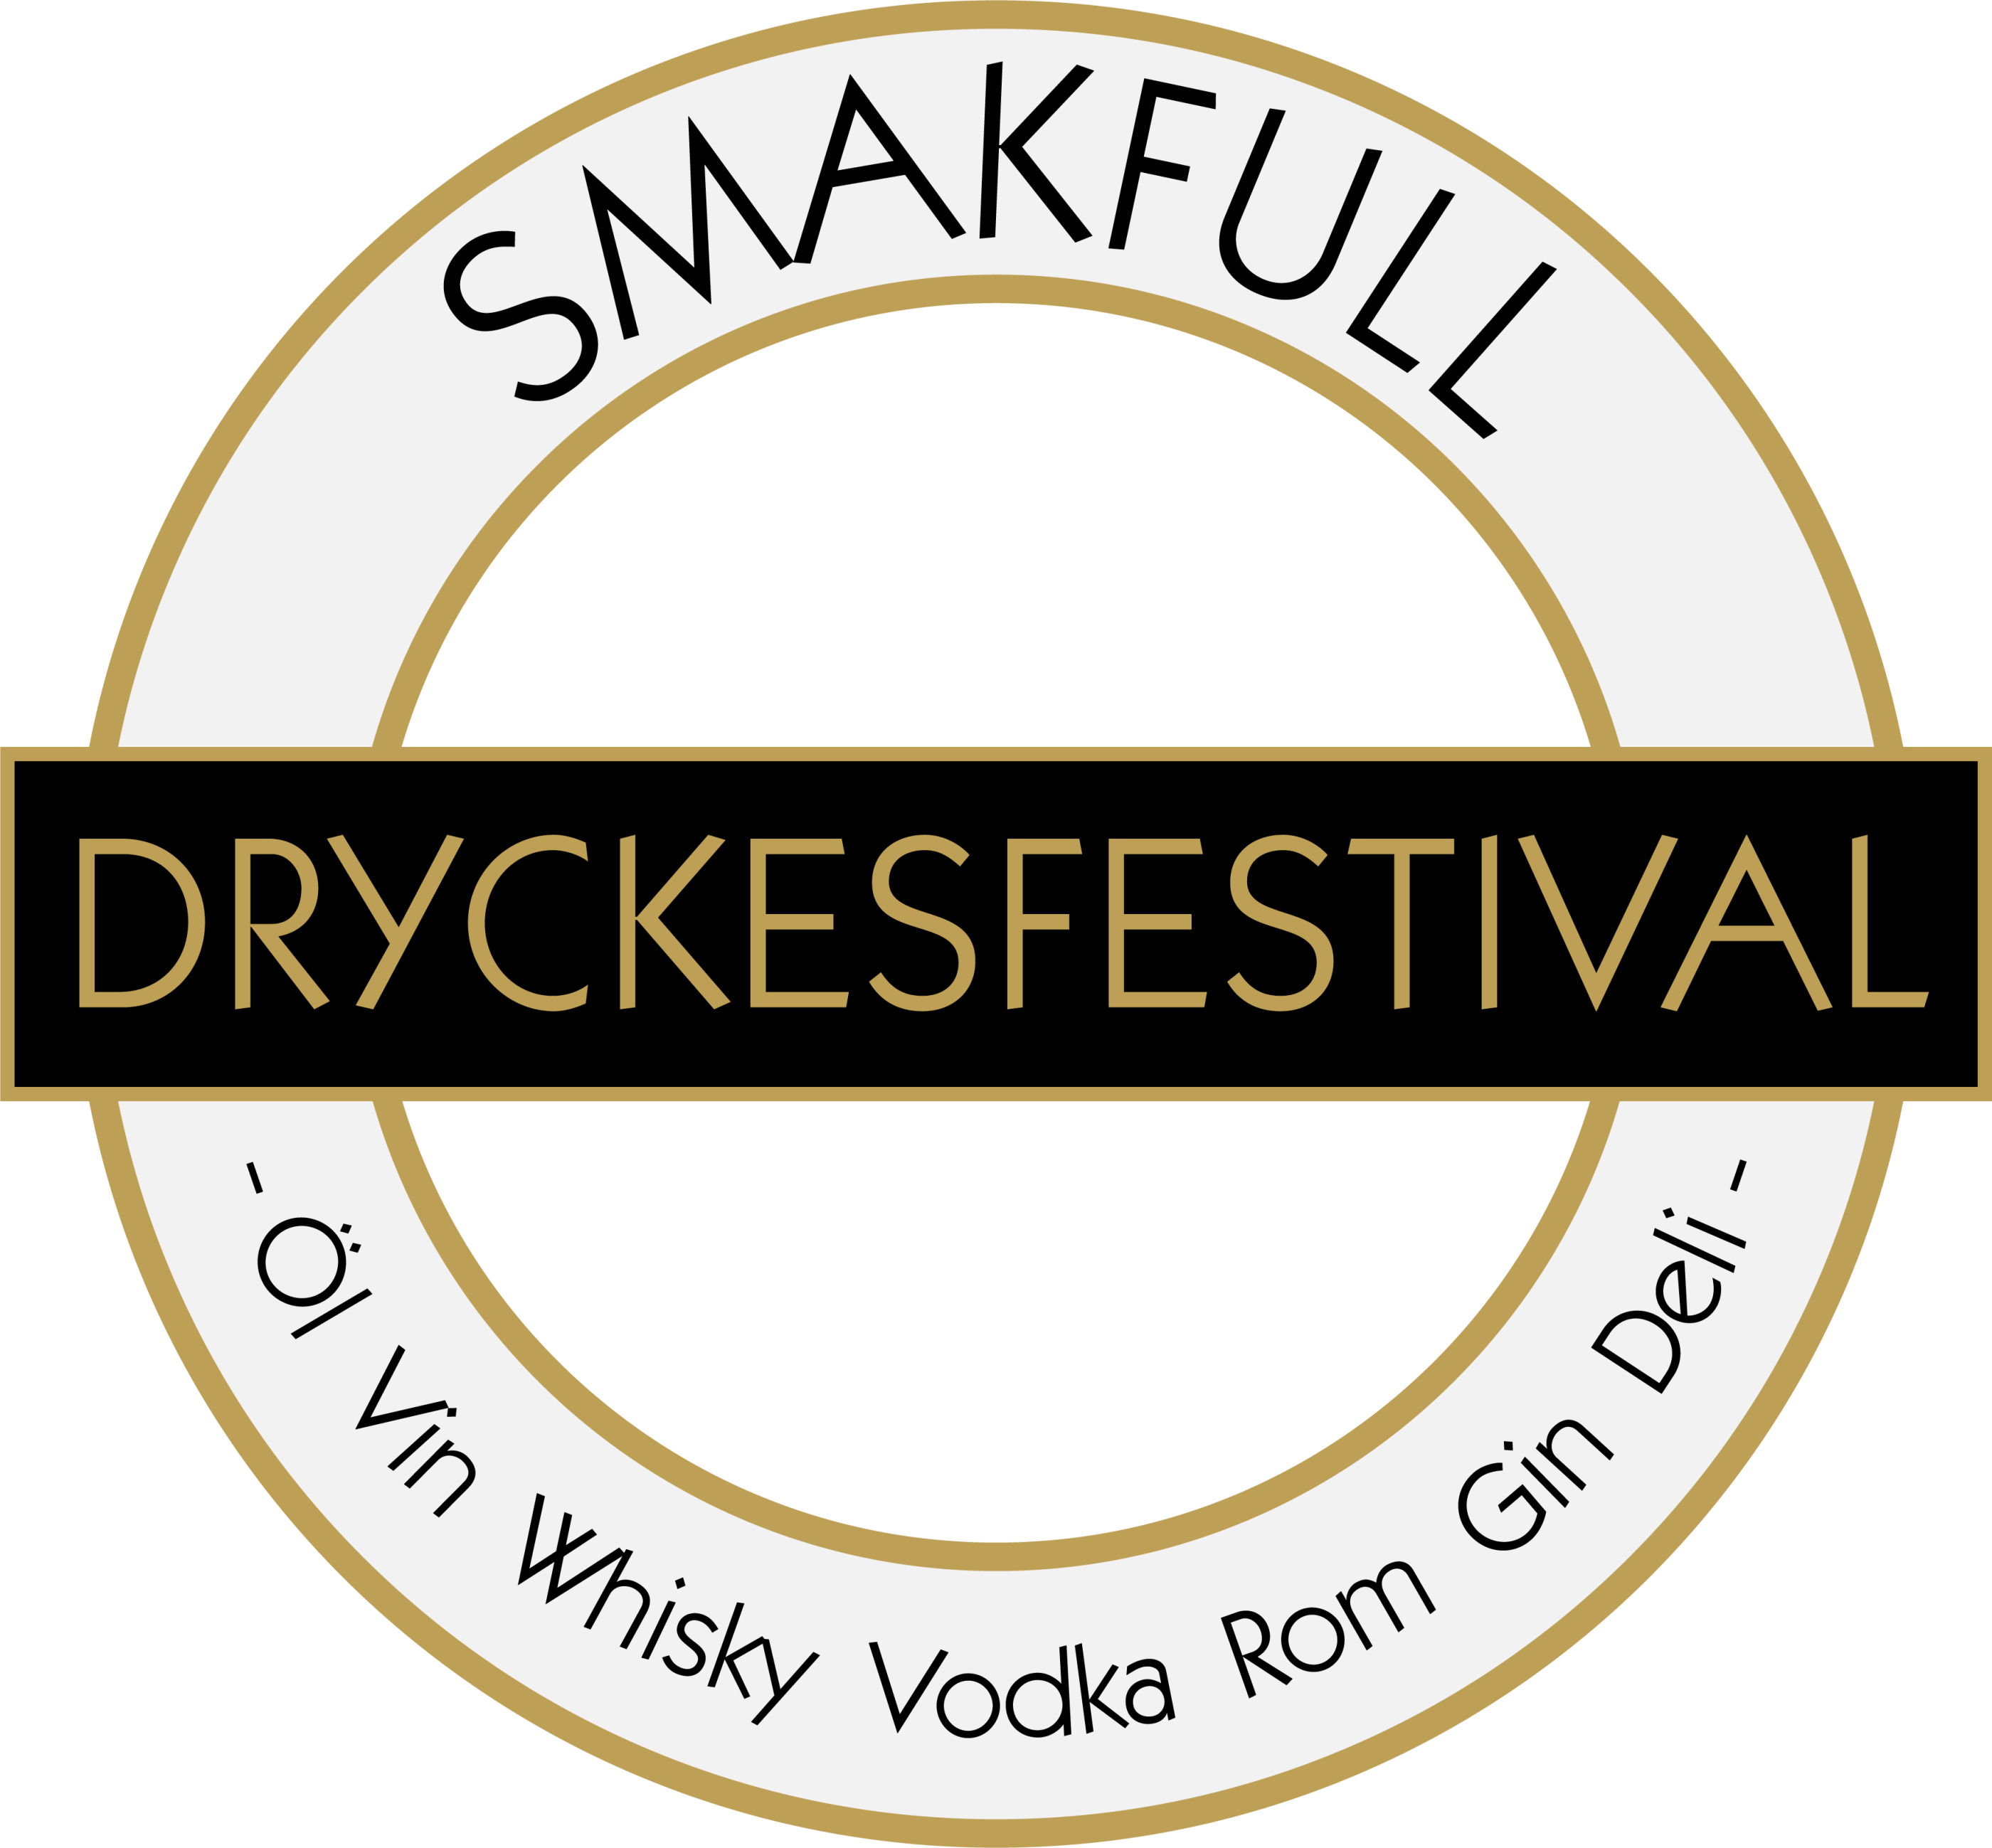 SMAKFULL Dryckesfestival glasloggo vektor